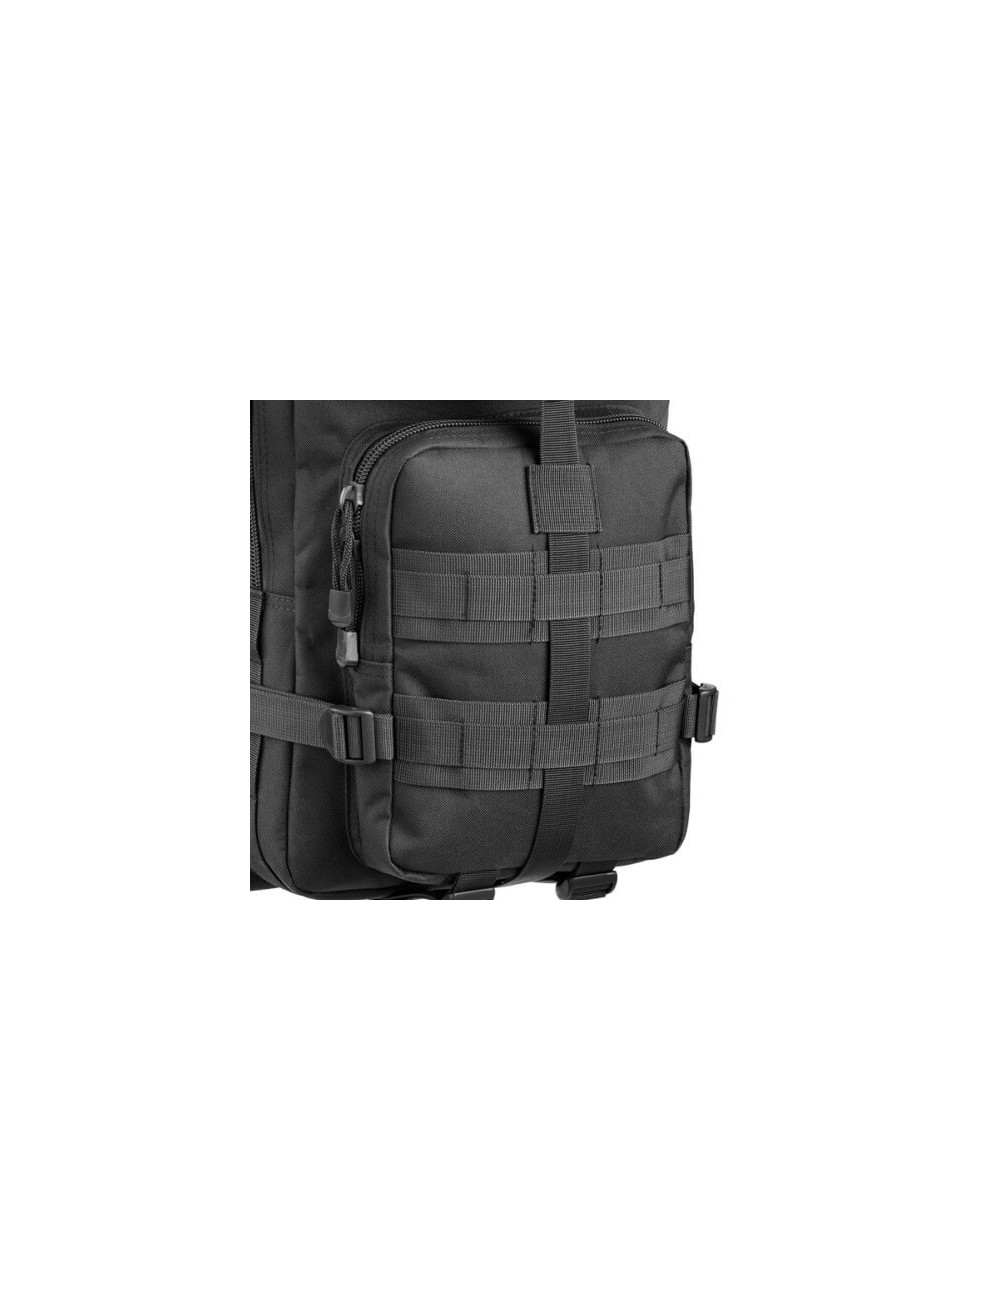 Defcon 5 rugzak Tactical backpack - Hydro compatible - 40 liter -Zwart